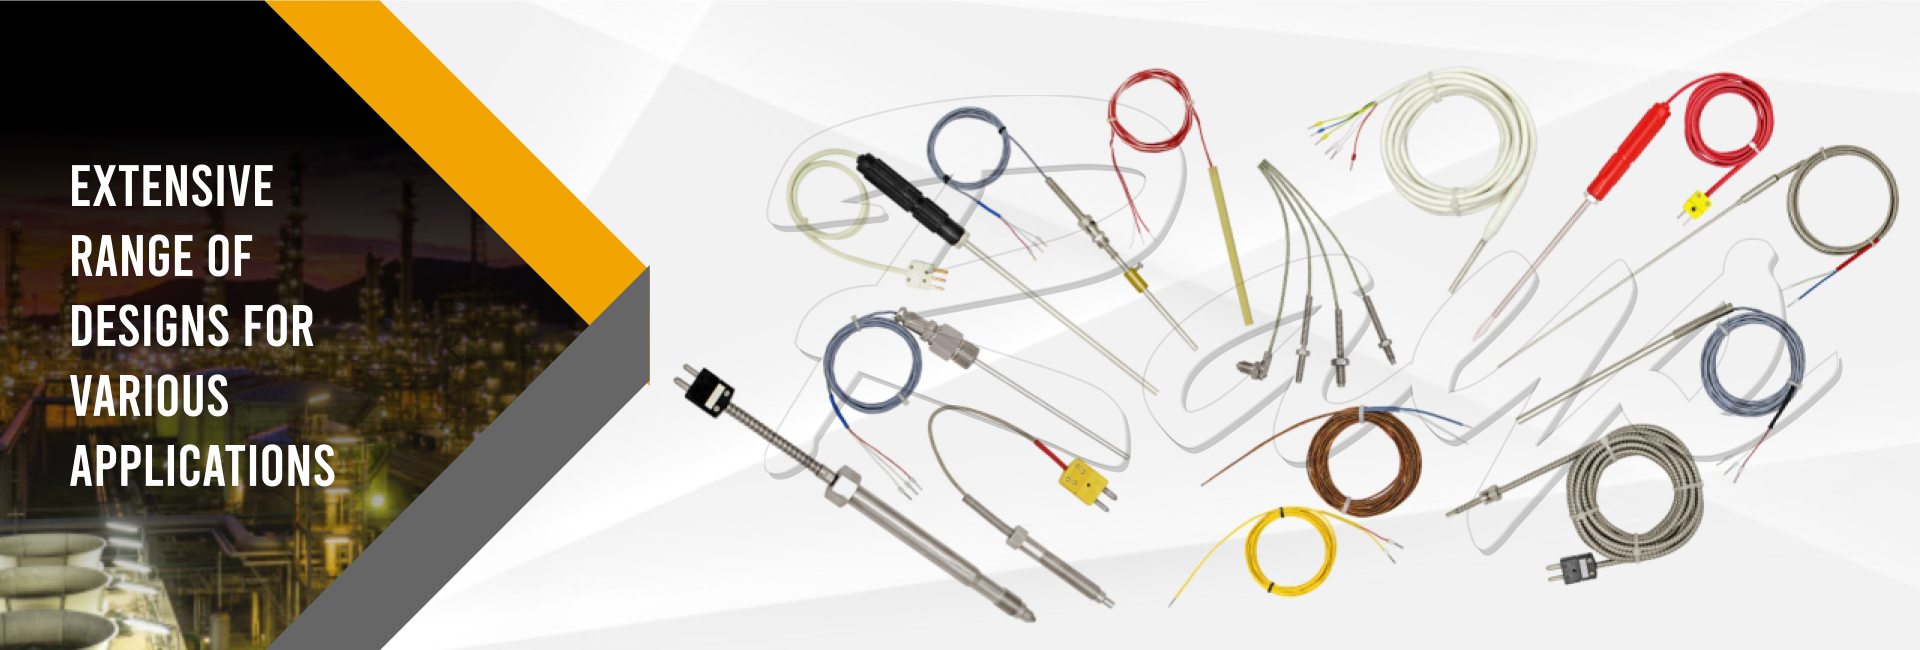 Extensive Range of Designs For Various Application - Temperature Sensor For Cement Industry, Thermocouple For Plastic Industry, Temperature Sensors for Packaging Machine